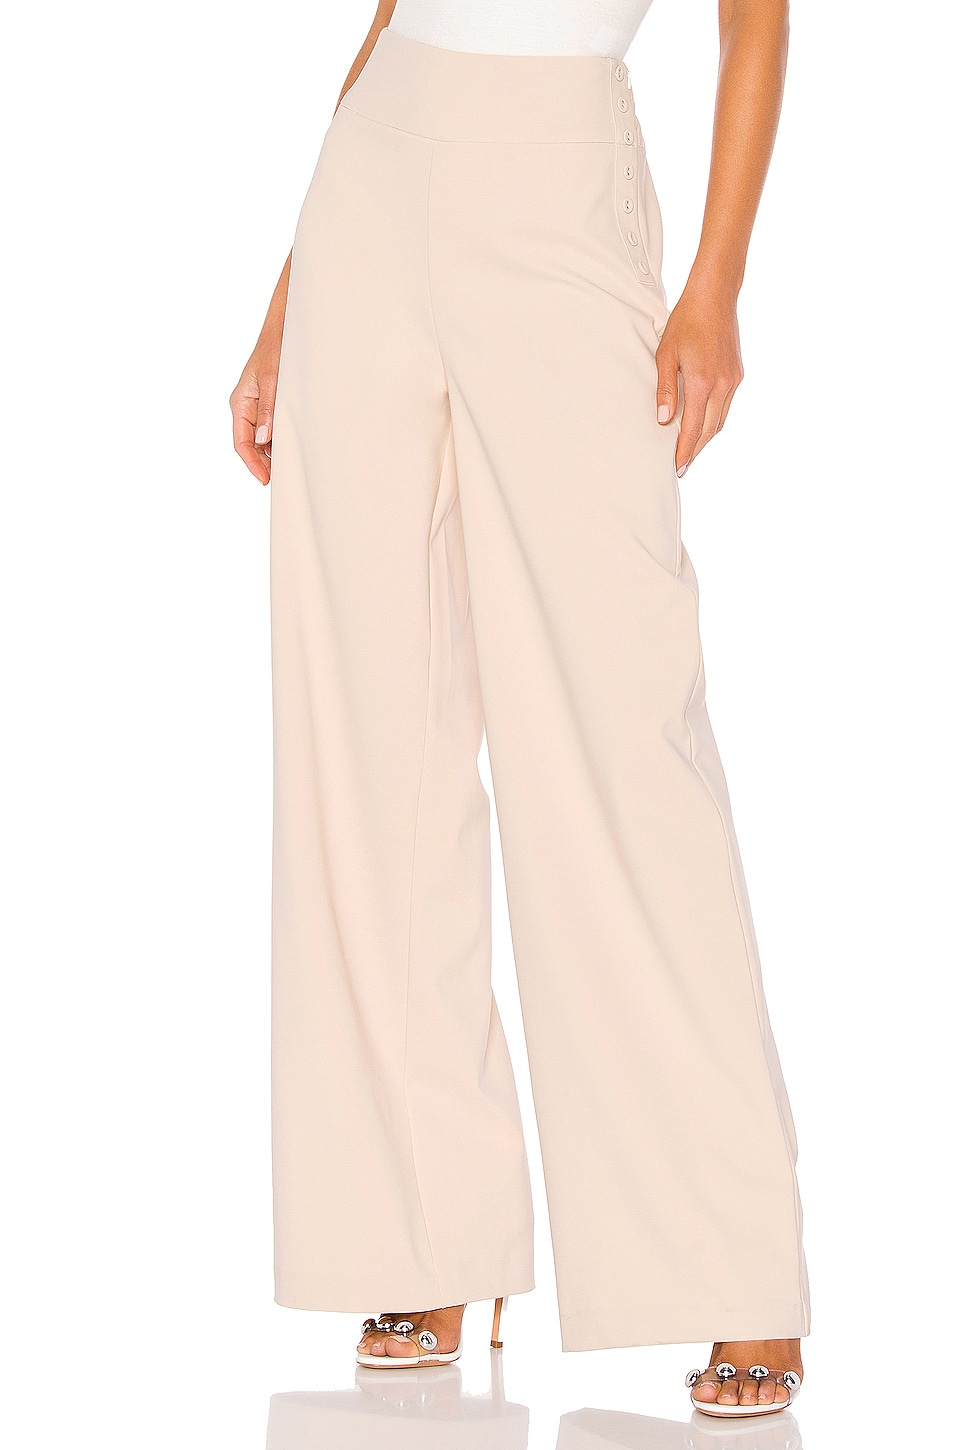 Lovers + Friends Aaron Pants in Beige